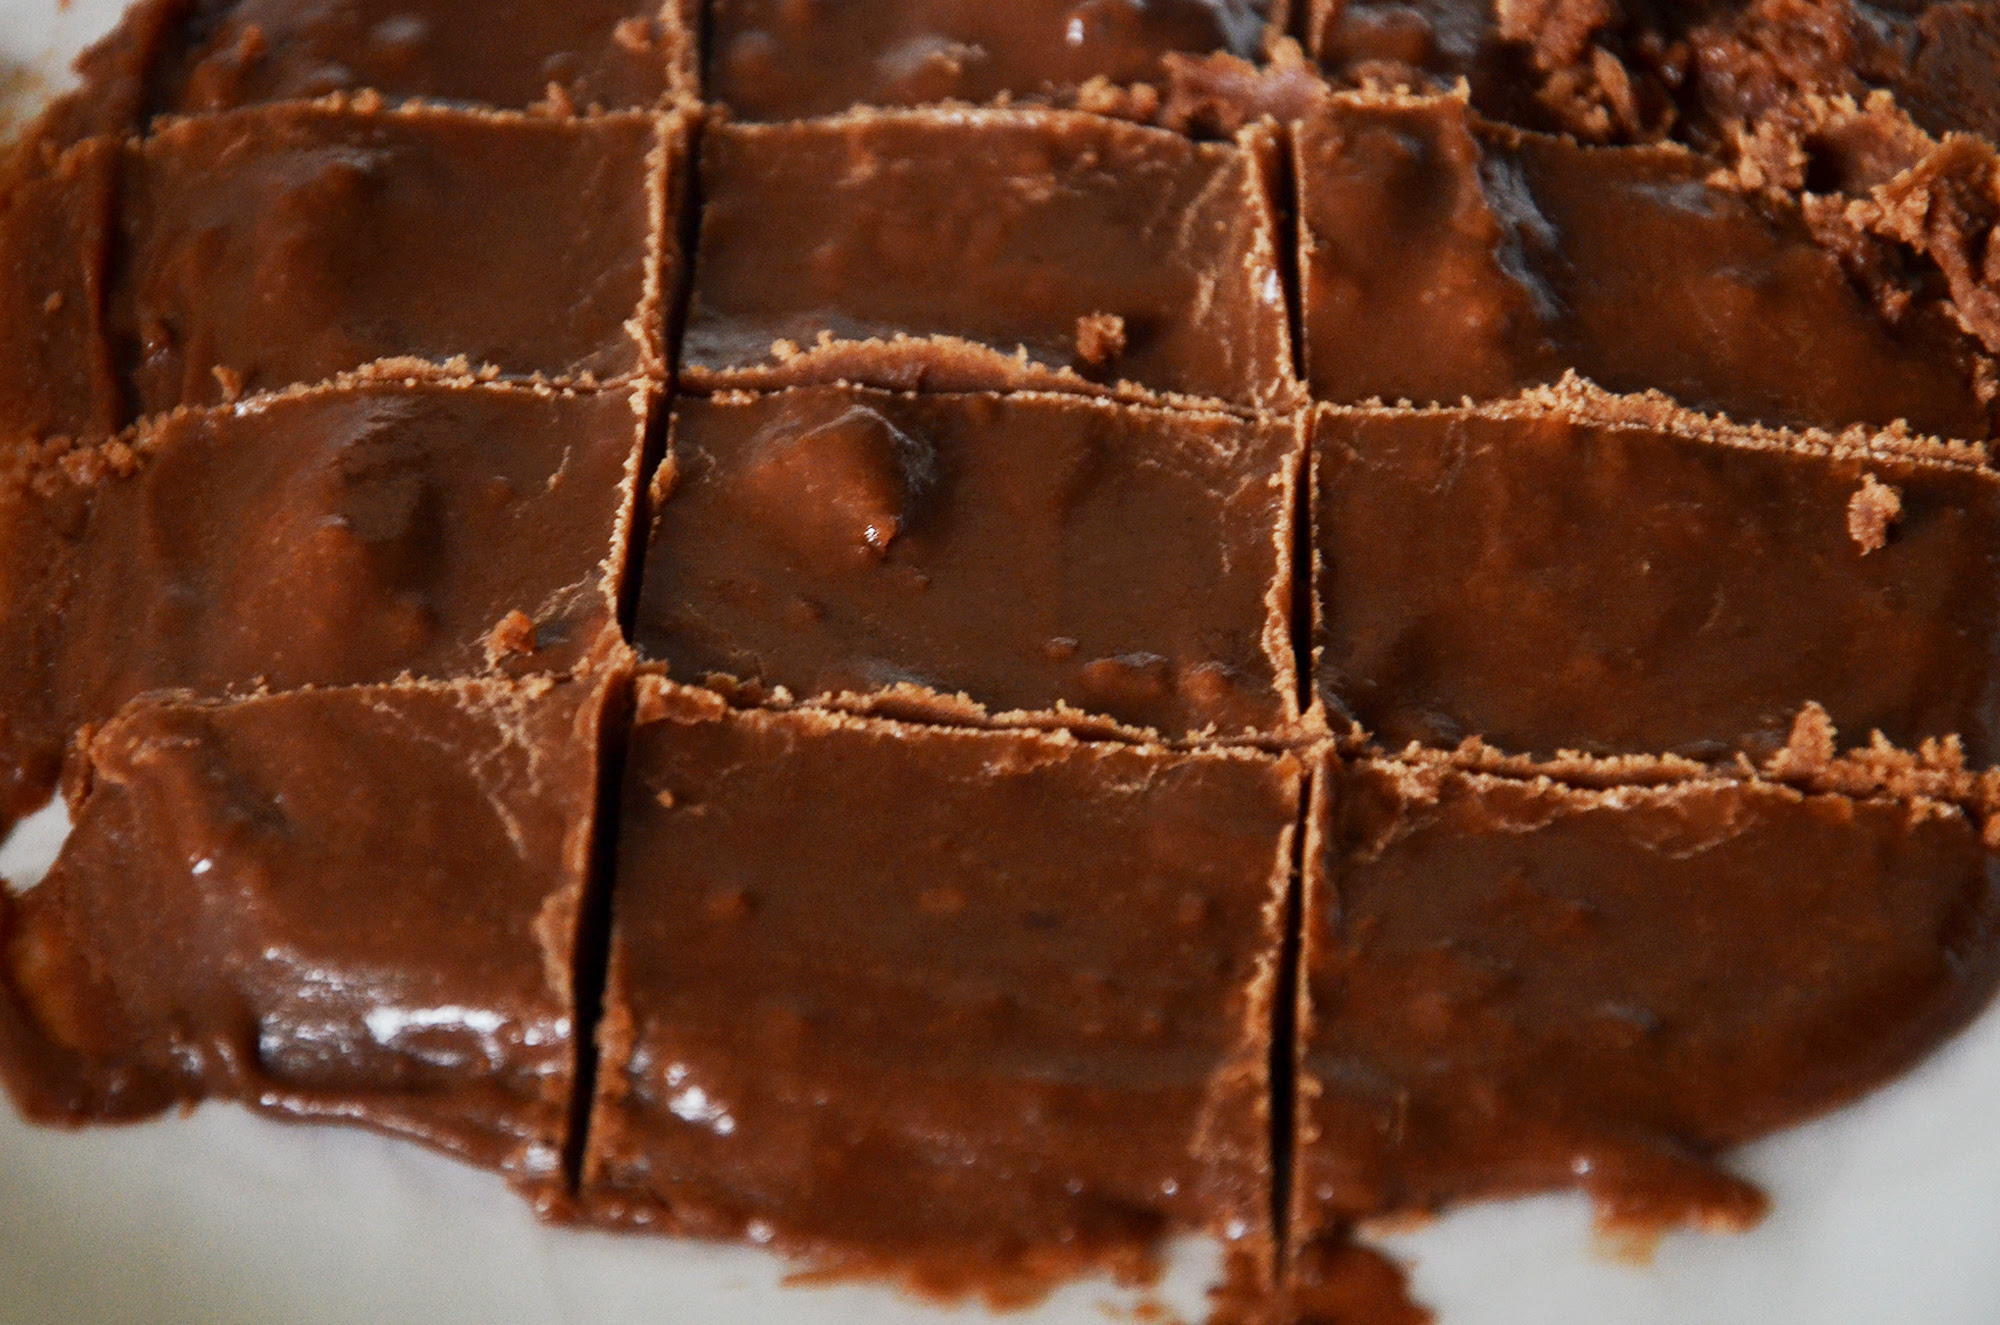 microwave fudge with cocoa powder and condensed milk